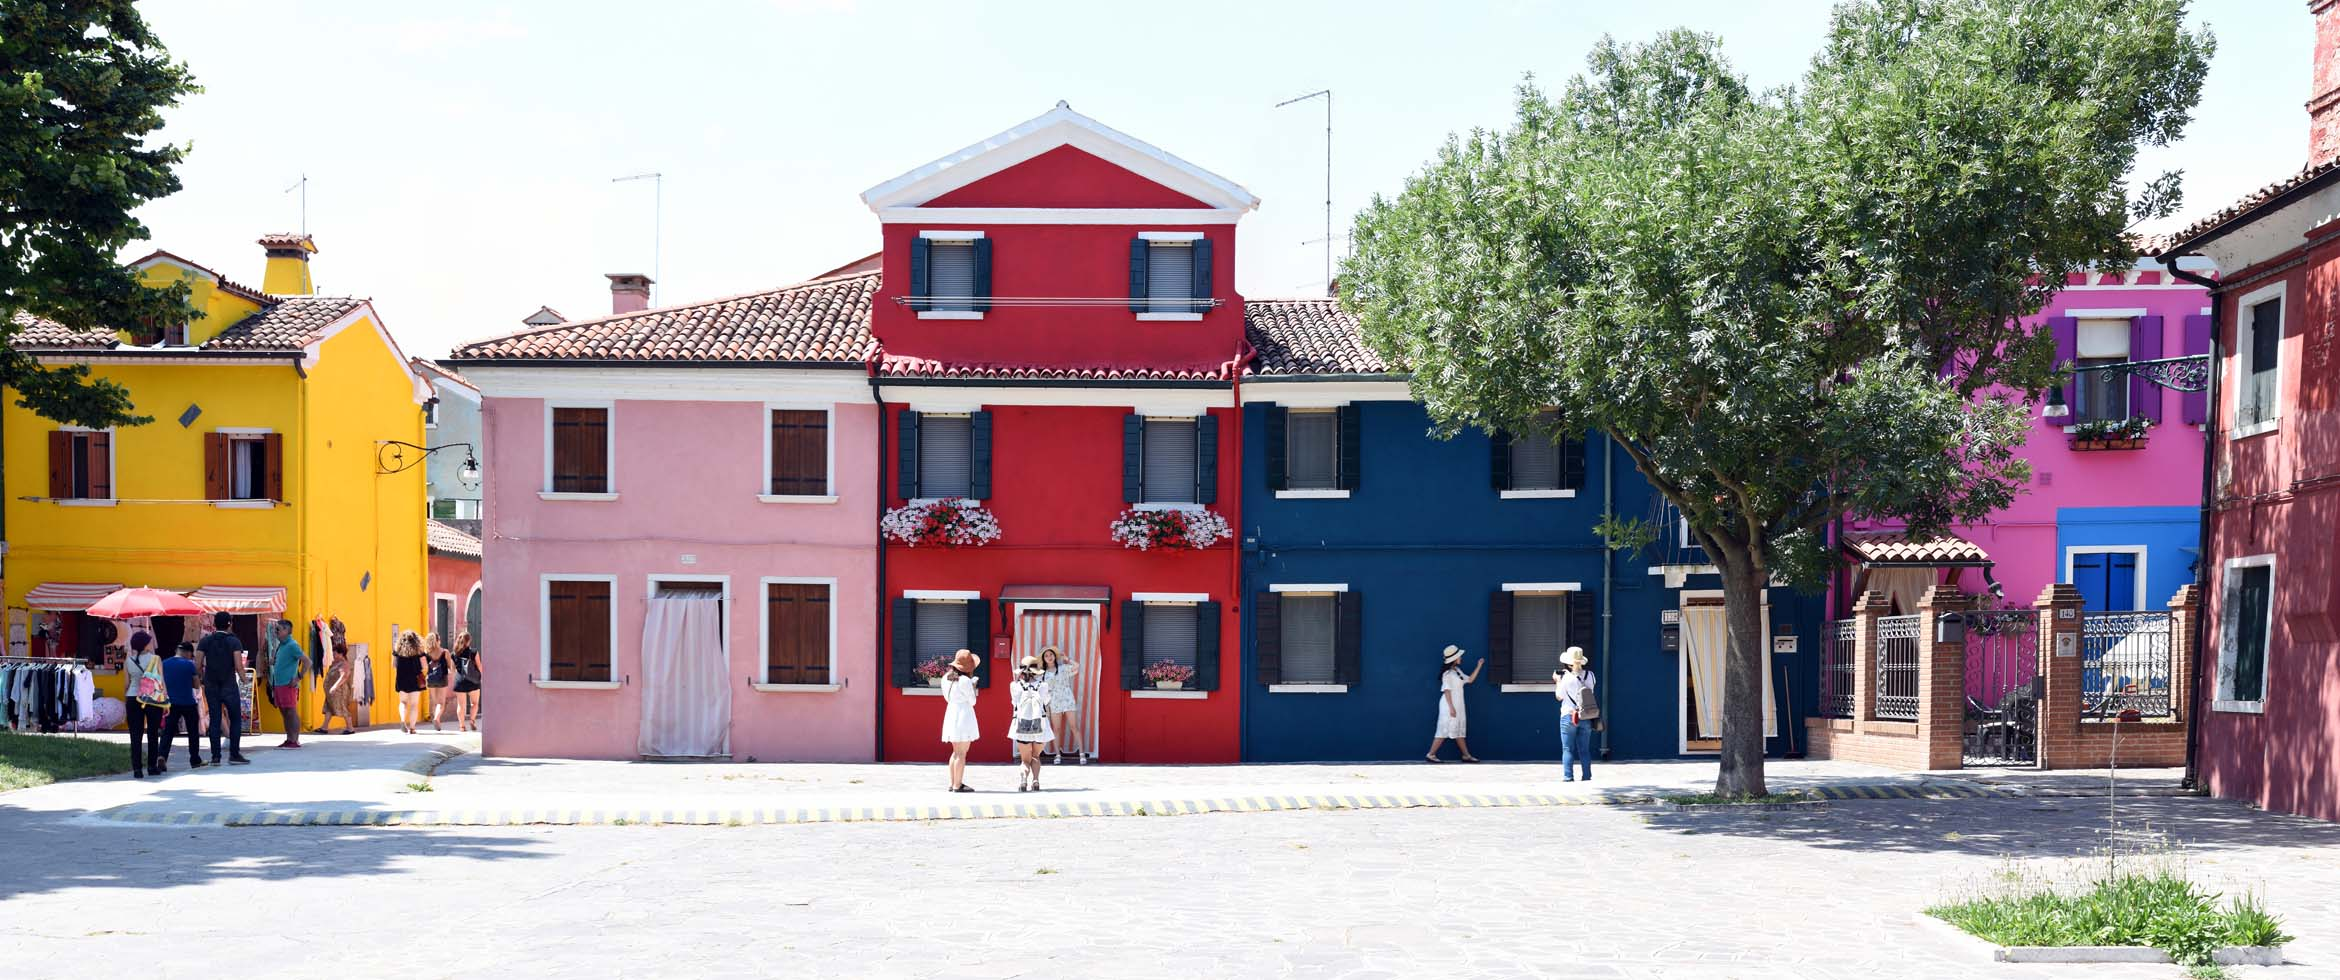 Girls modeling in front of Burano houses